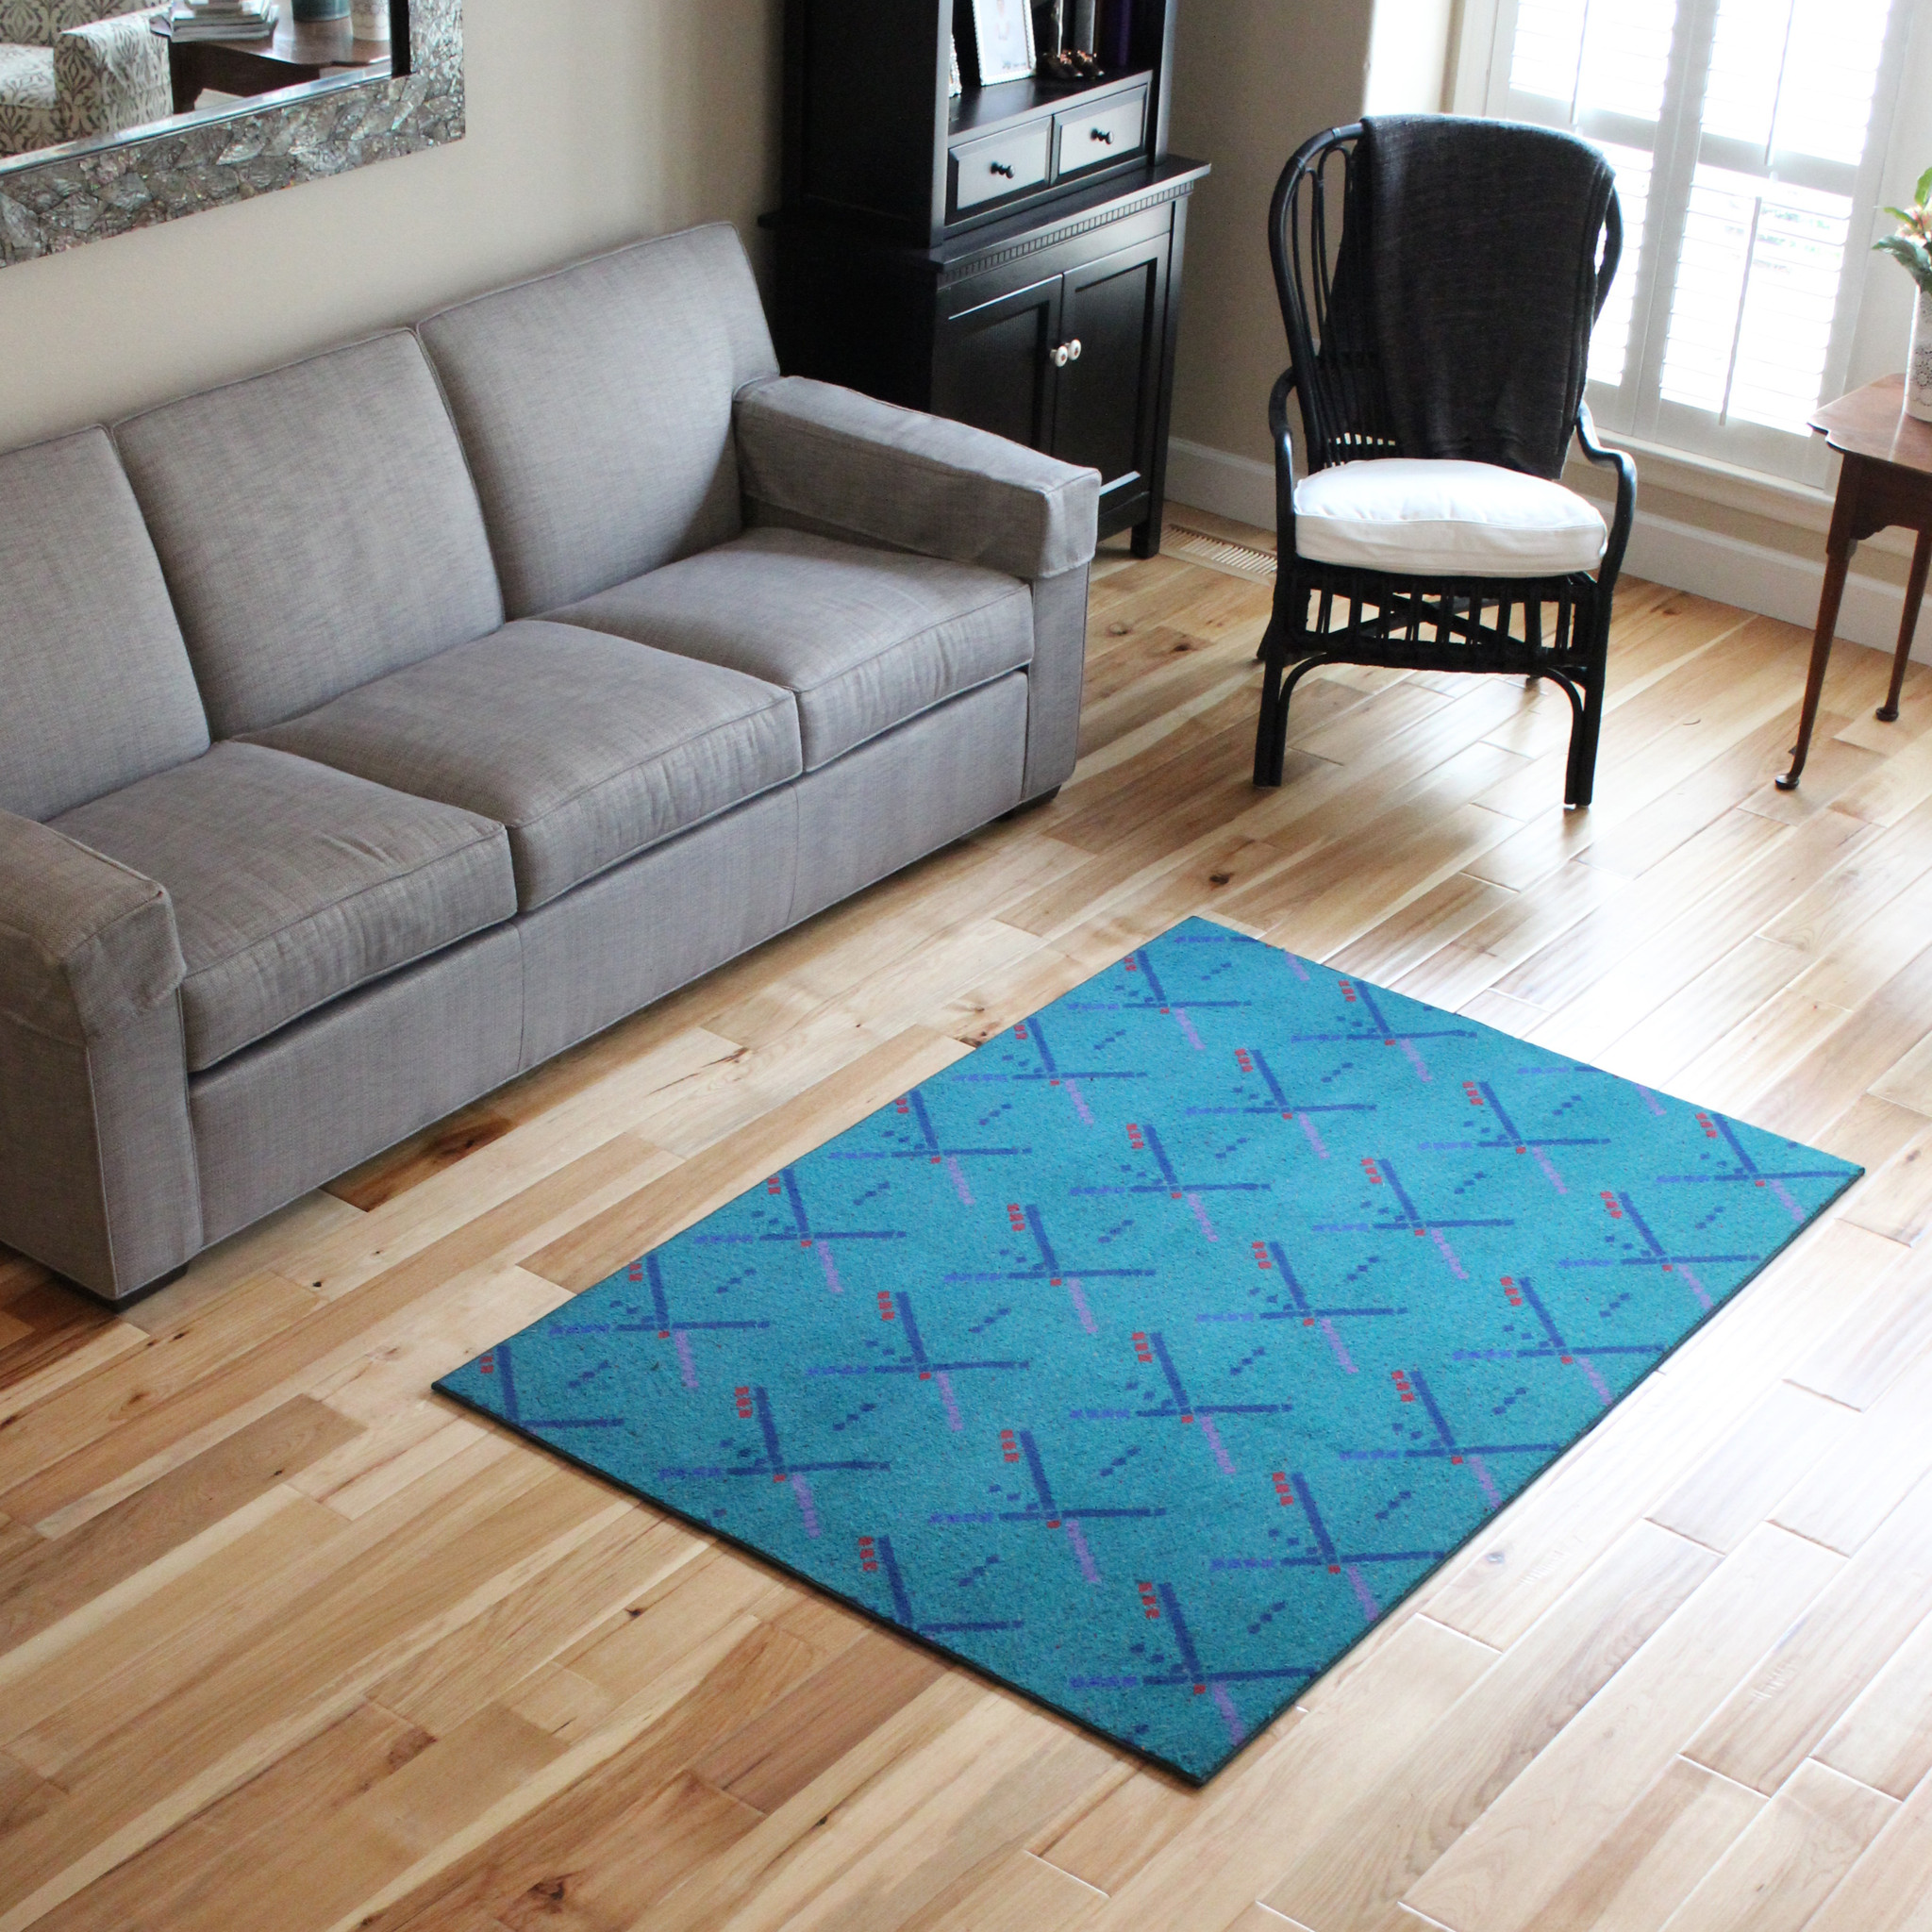 Amusing 4x6 rugs sheepskin rug and dark laminate floor also sectional sofa combined with queen bedsize for Living Room or Bedroom